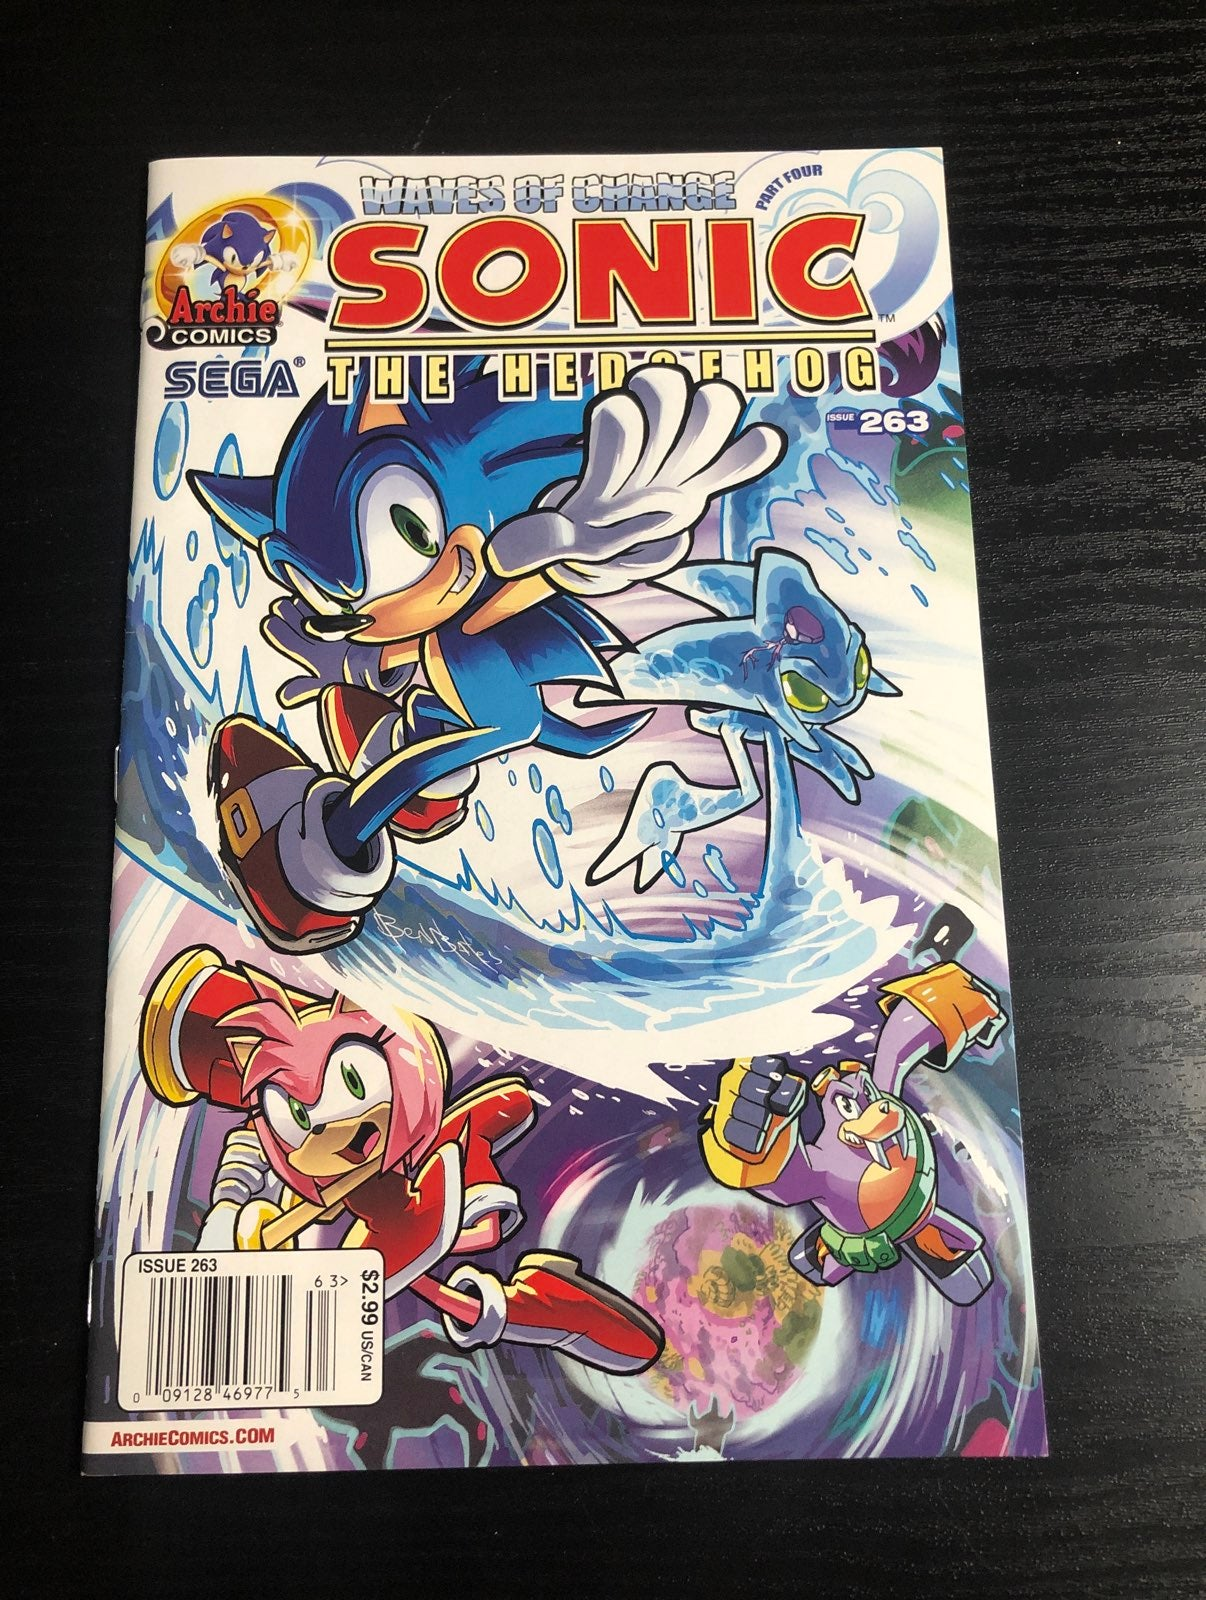 Sonic the Hedgehog comic issue 263